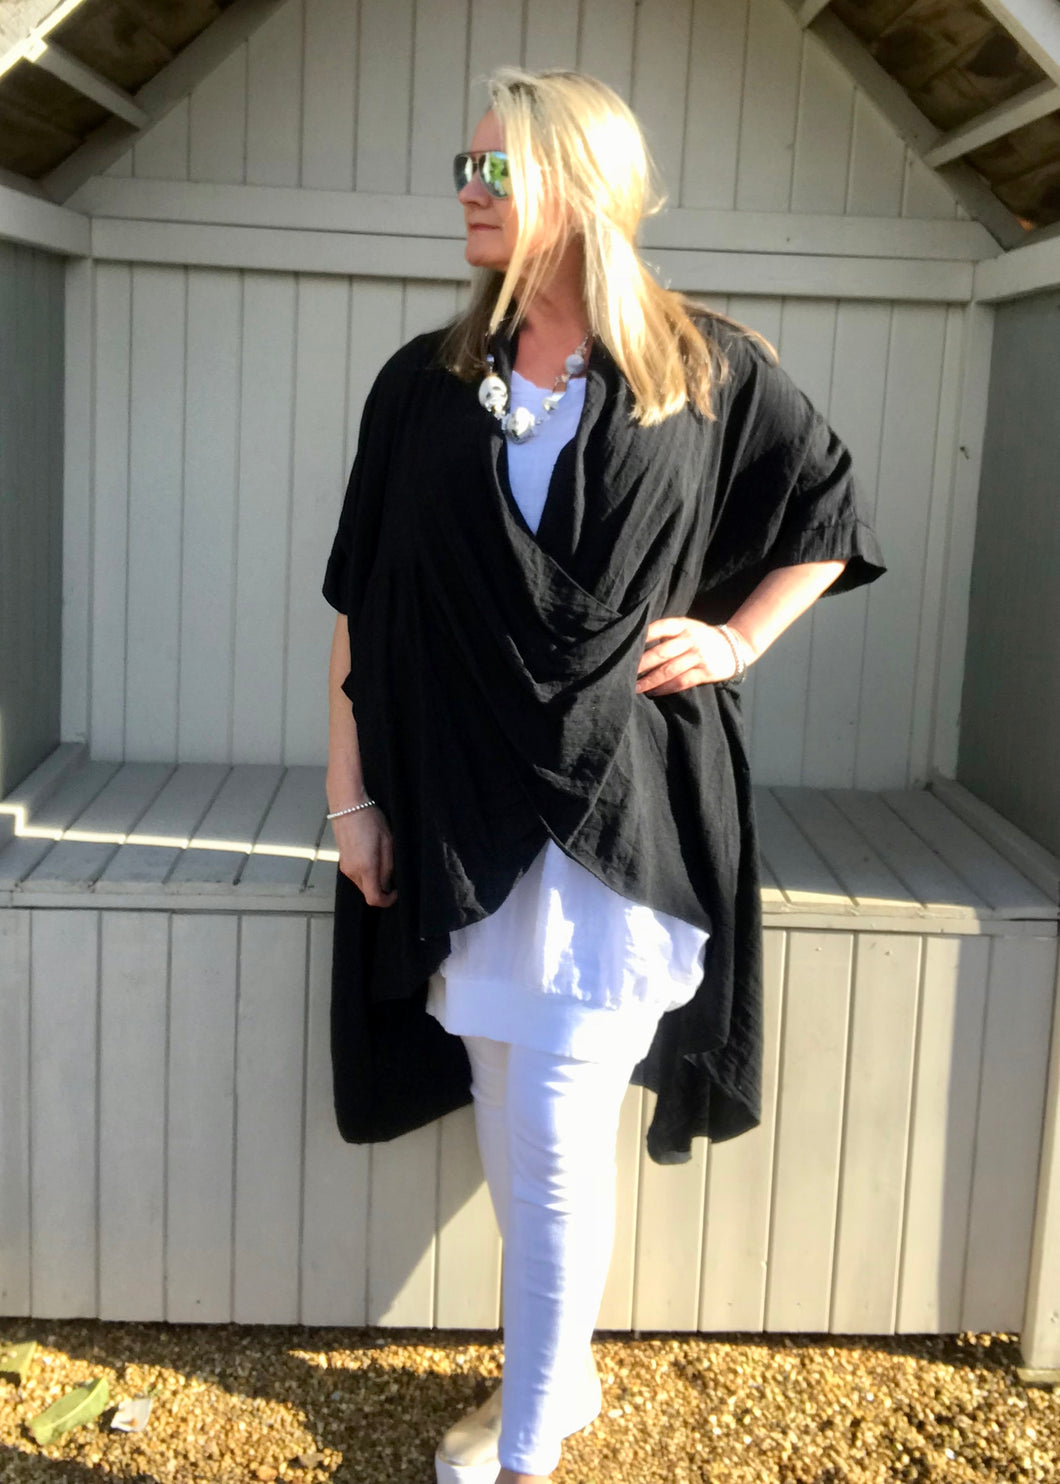 Multi-Wear Soft Drape 100% Cotton Beach Jacket in Black Made In Italy by Feathers Of Italy One SIze - Feathers Of Italy